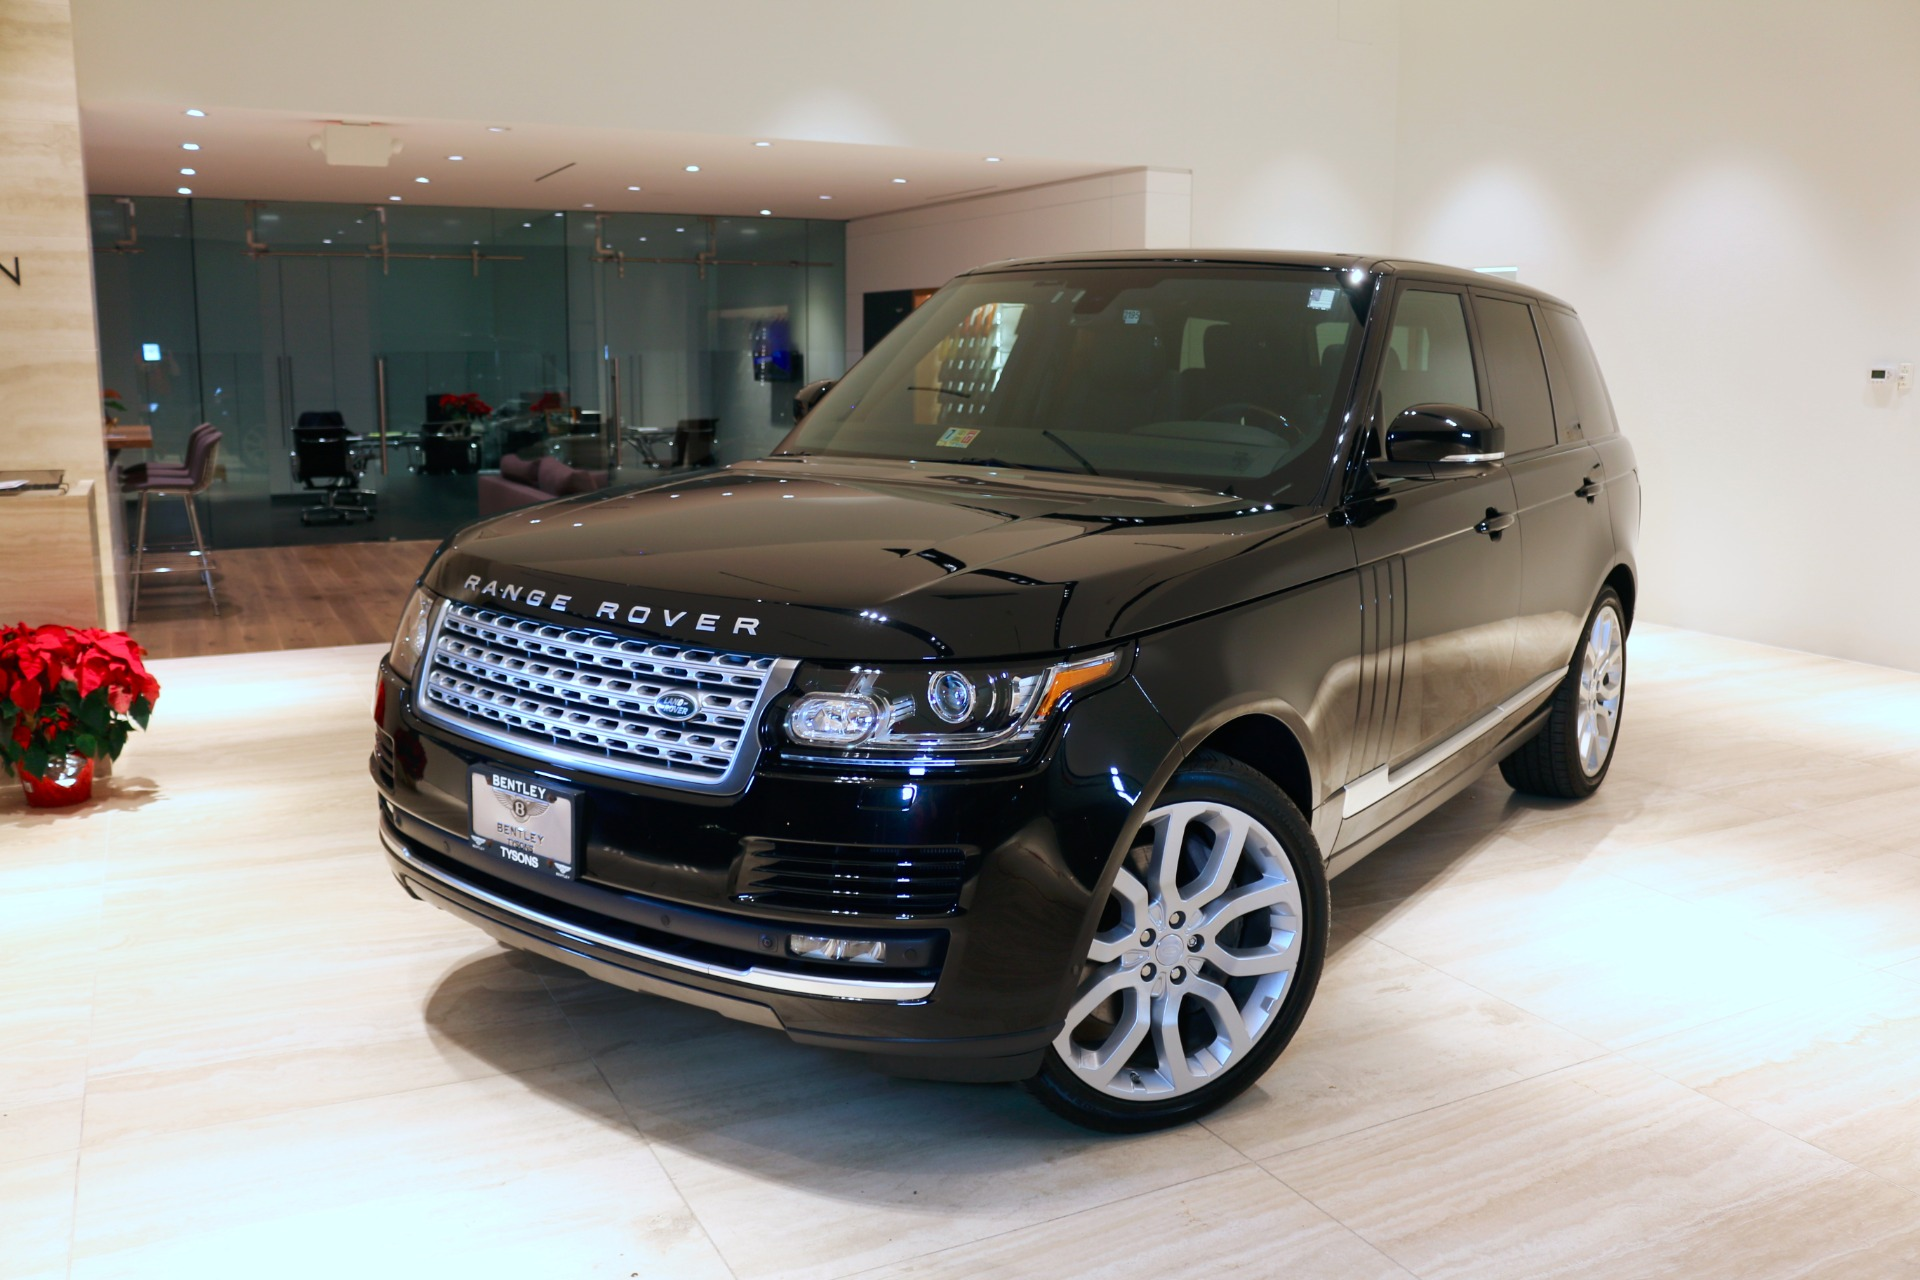 2015 land rover range rover supercharged stock p239099a for sale near vienna va va land - Land rover garage near me ...